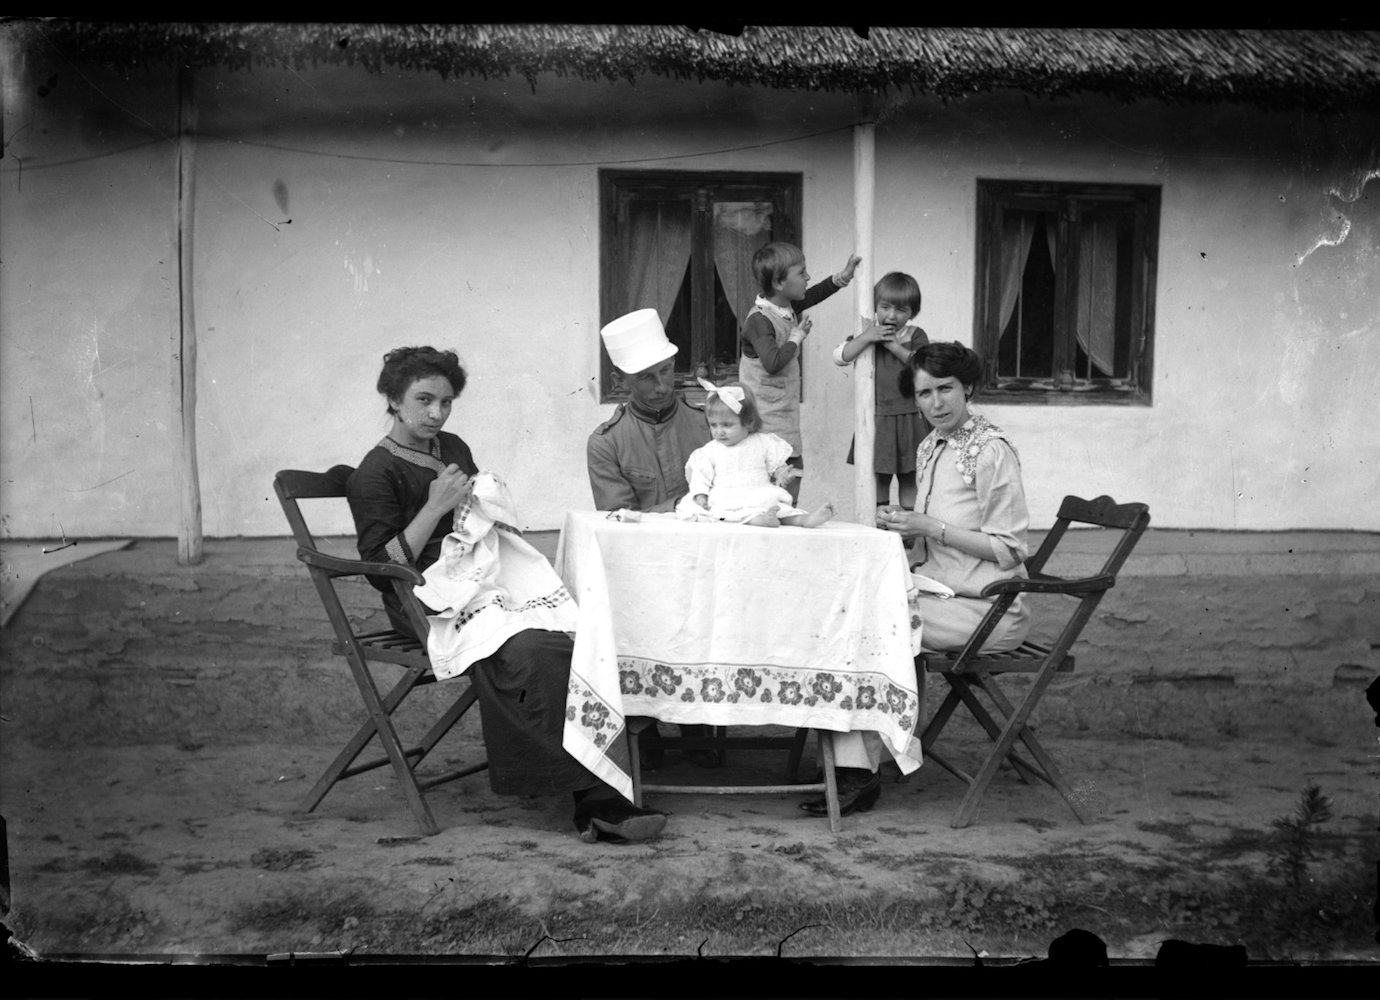 A digital photo archive shows everyday life in 20th-century Romania